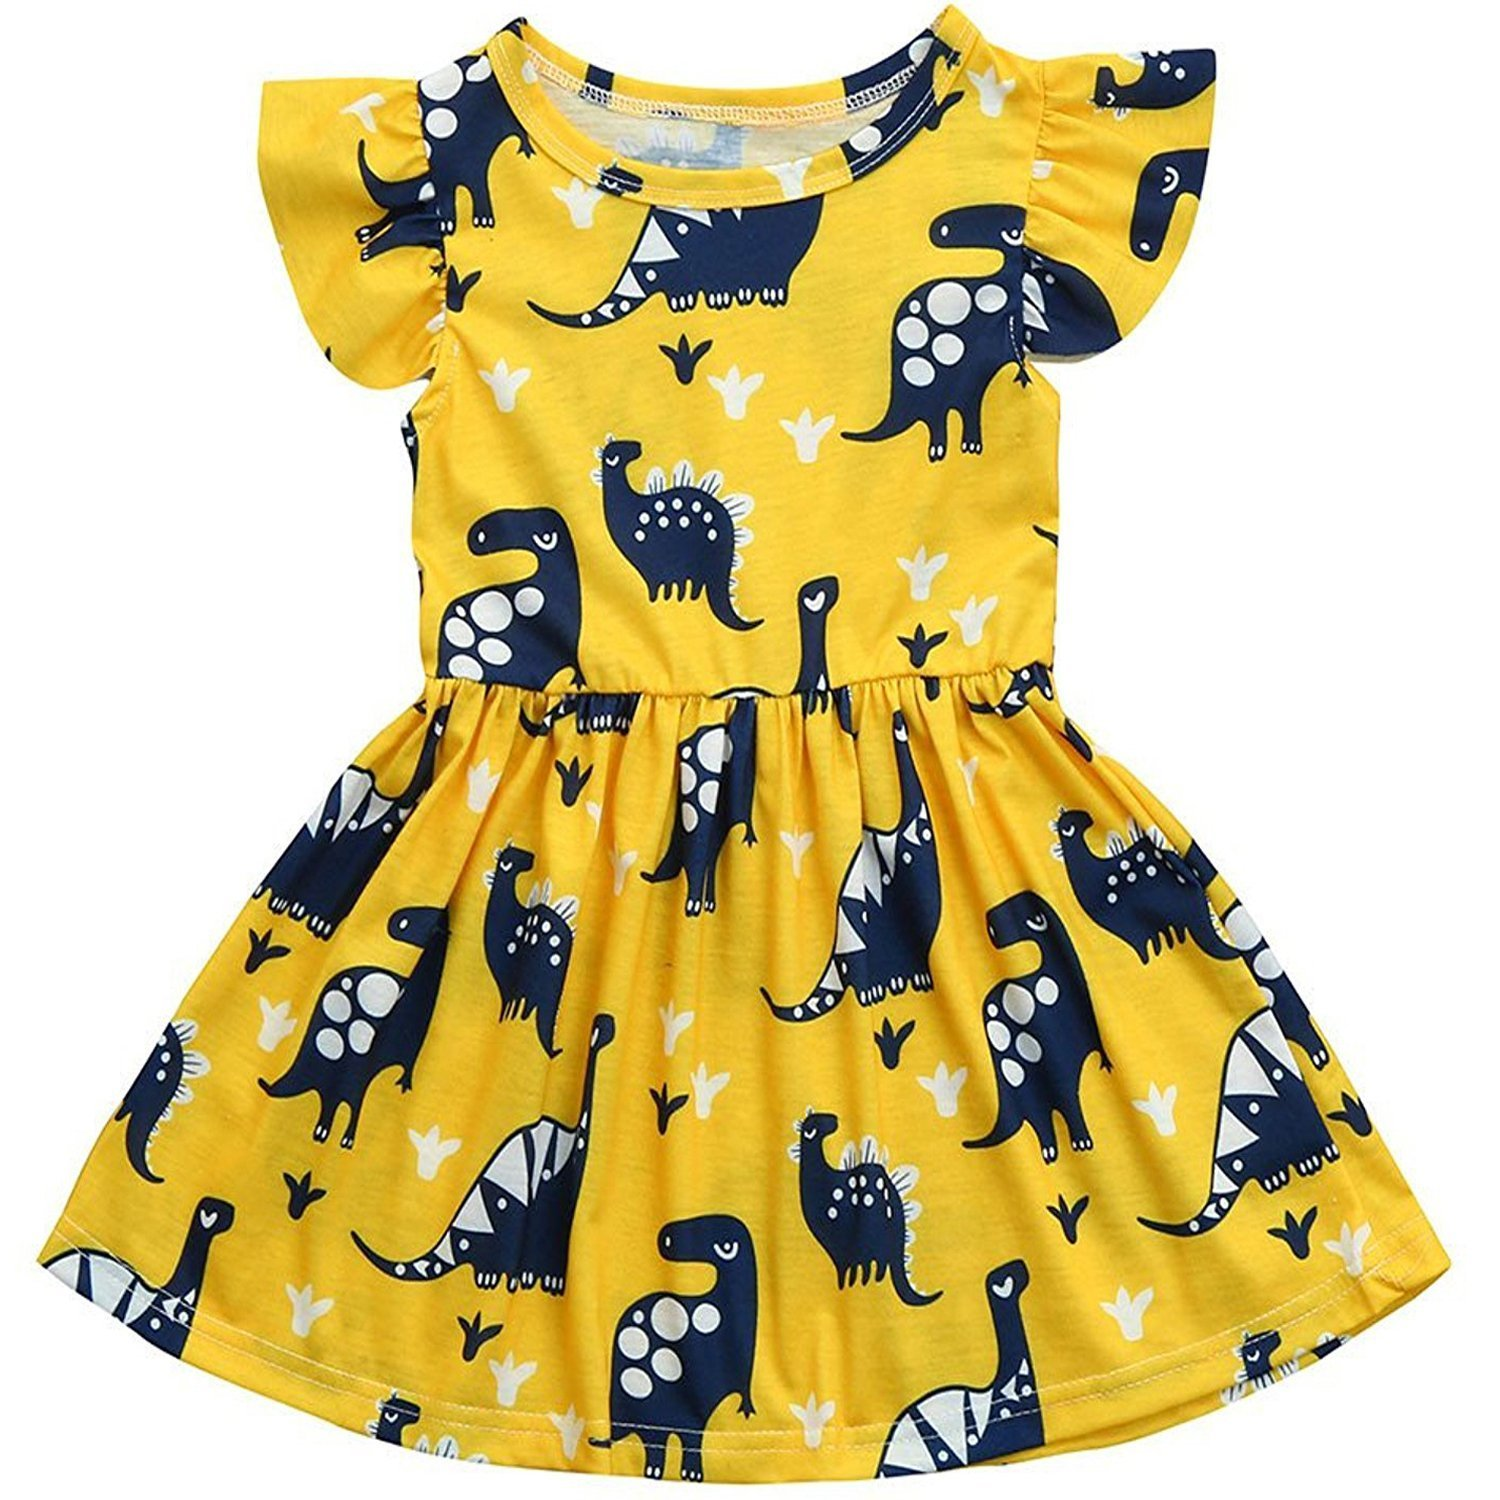 Unmega Toddler Baby Girl Dinosaur Dress Bubble Sleeve Dress Ruffle Clothes